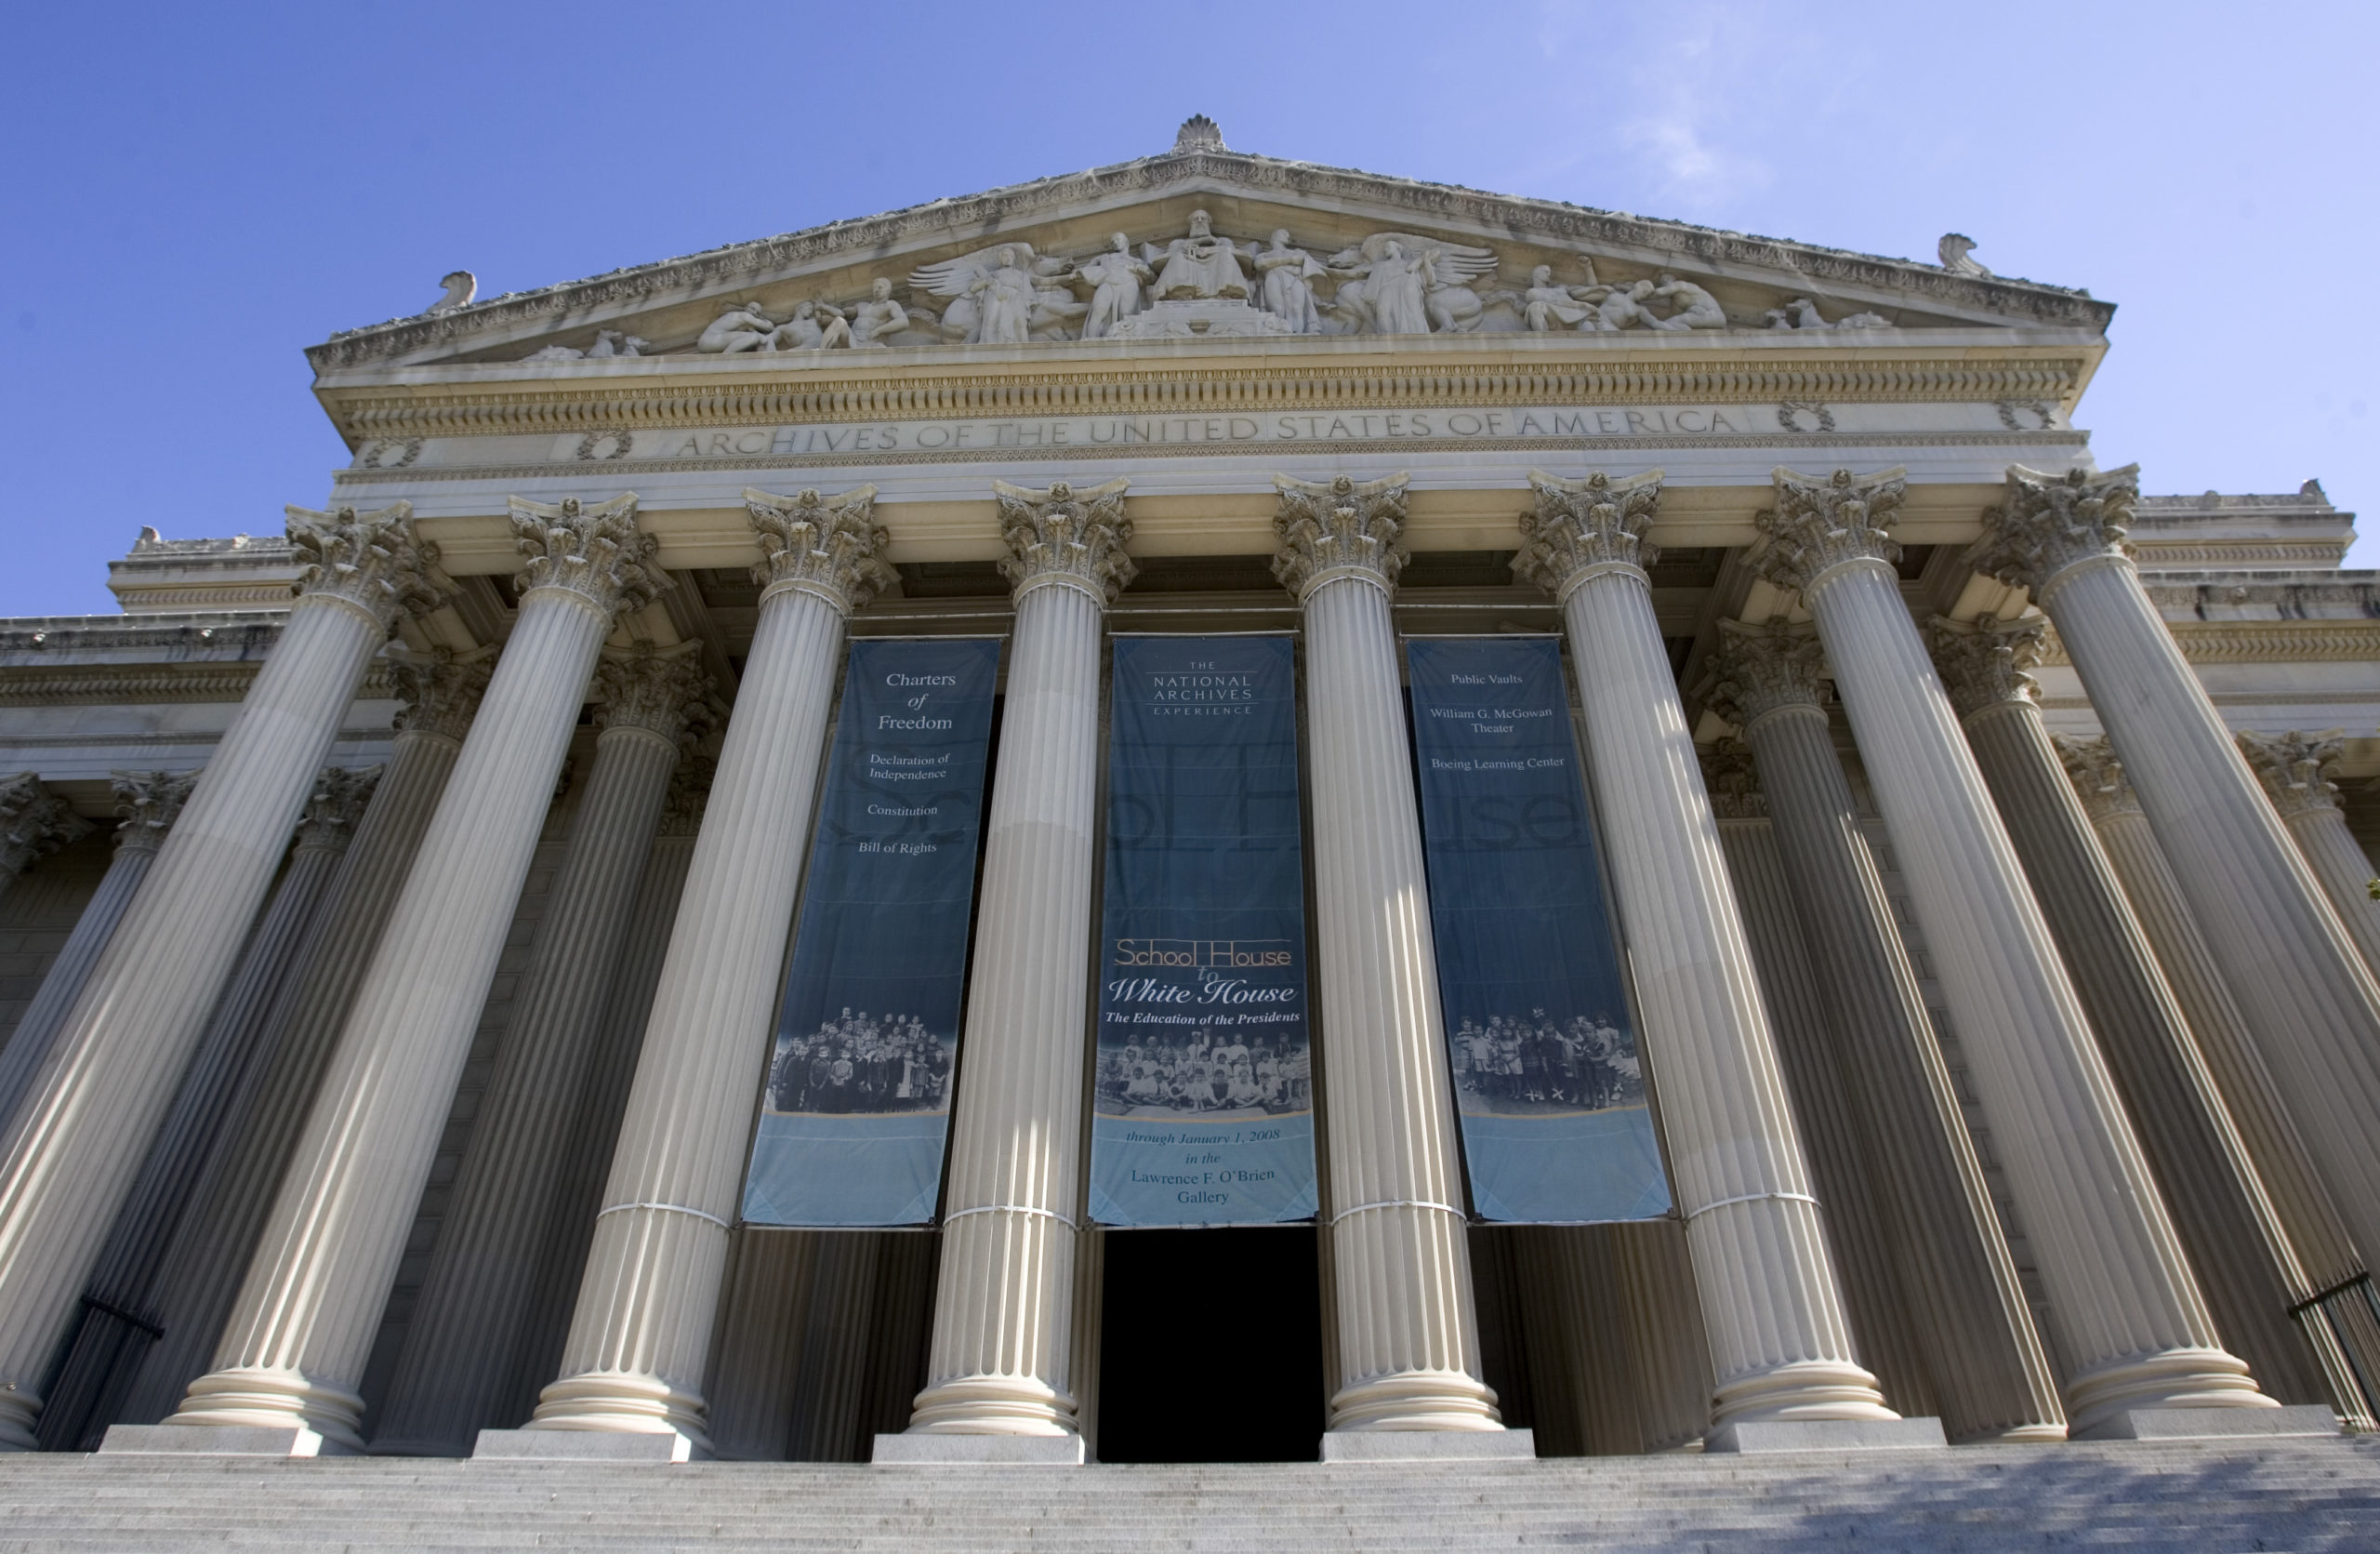 The National Archives building is shown in Washington, D.C. (Saul Loeb/AFP via Getty Images)